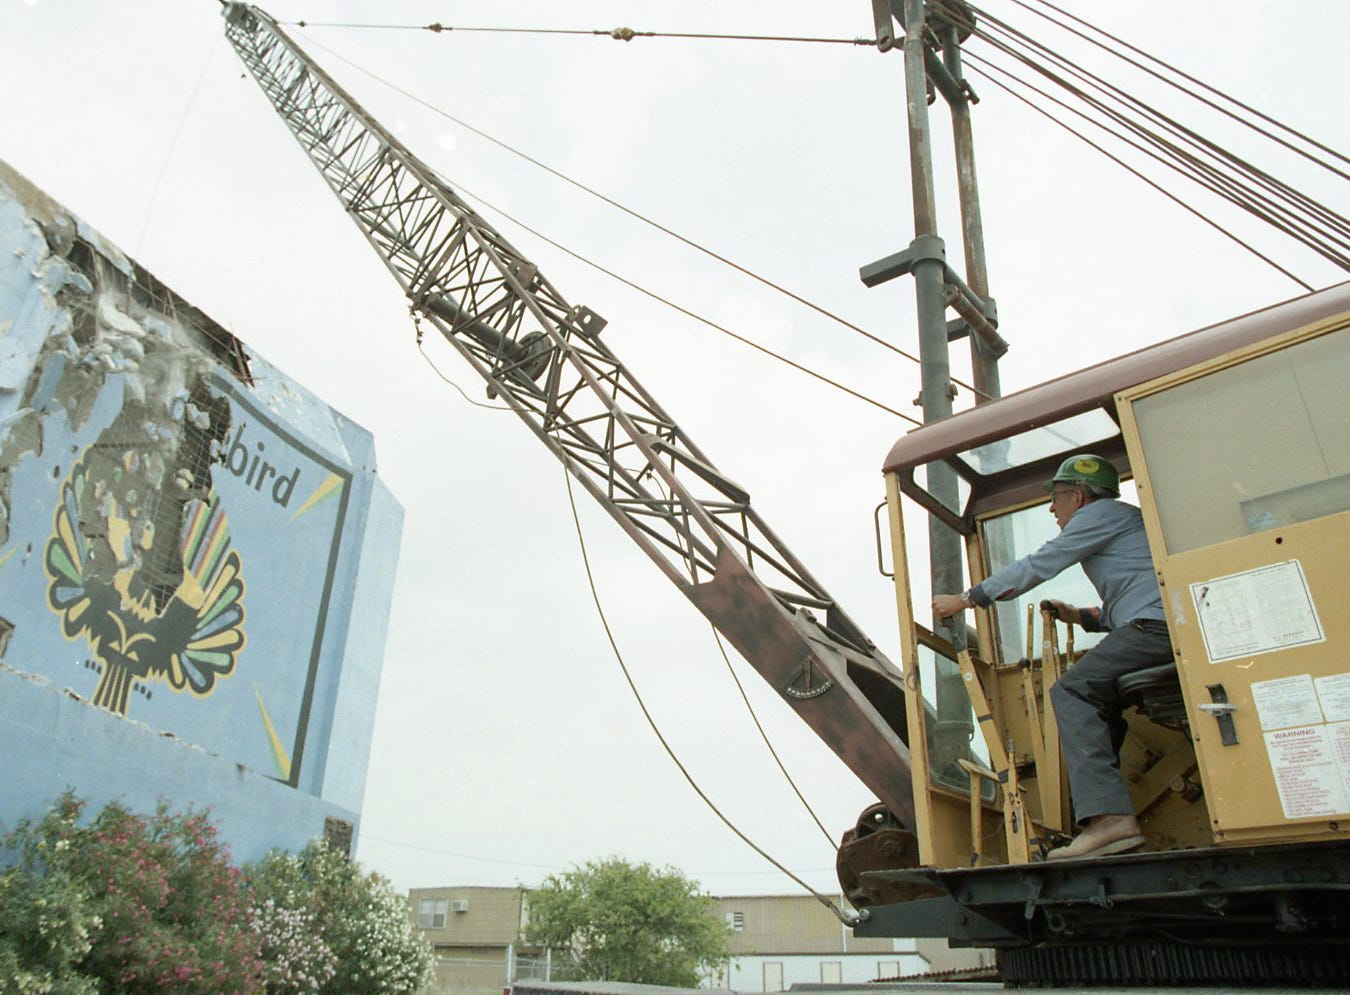 The Thunderbird Drive-In on Leopard Street didn't go down easily as workers began demolishing it on May 4, 1998. At times the structure resisted the blows of the wrecking ball, which sometimes bounced off the building after leaving barely a dent.